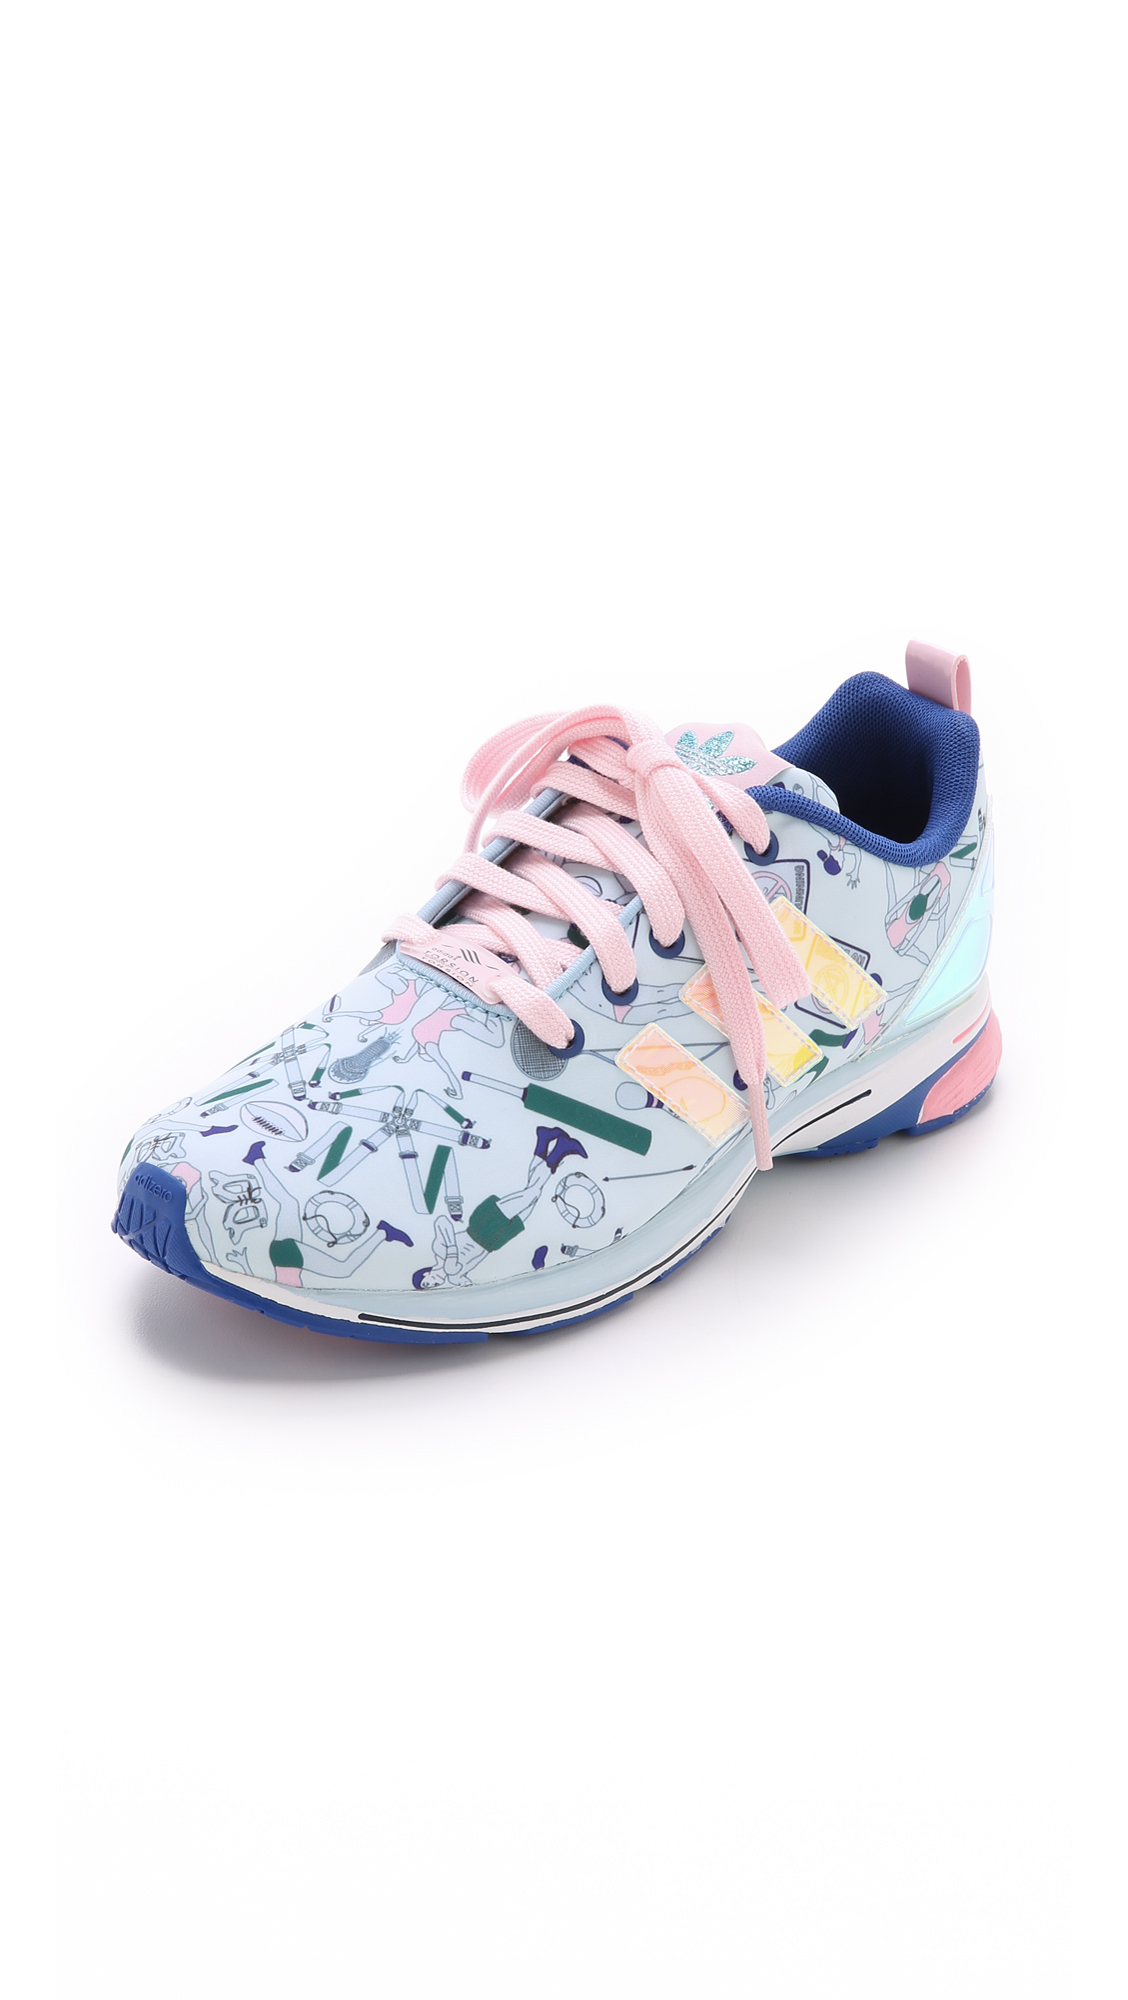 e16d4bc04 adidas Originals by Mary Katrantzou MK ZX Flux Tech Jogger Sneakers ...